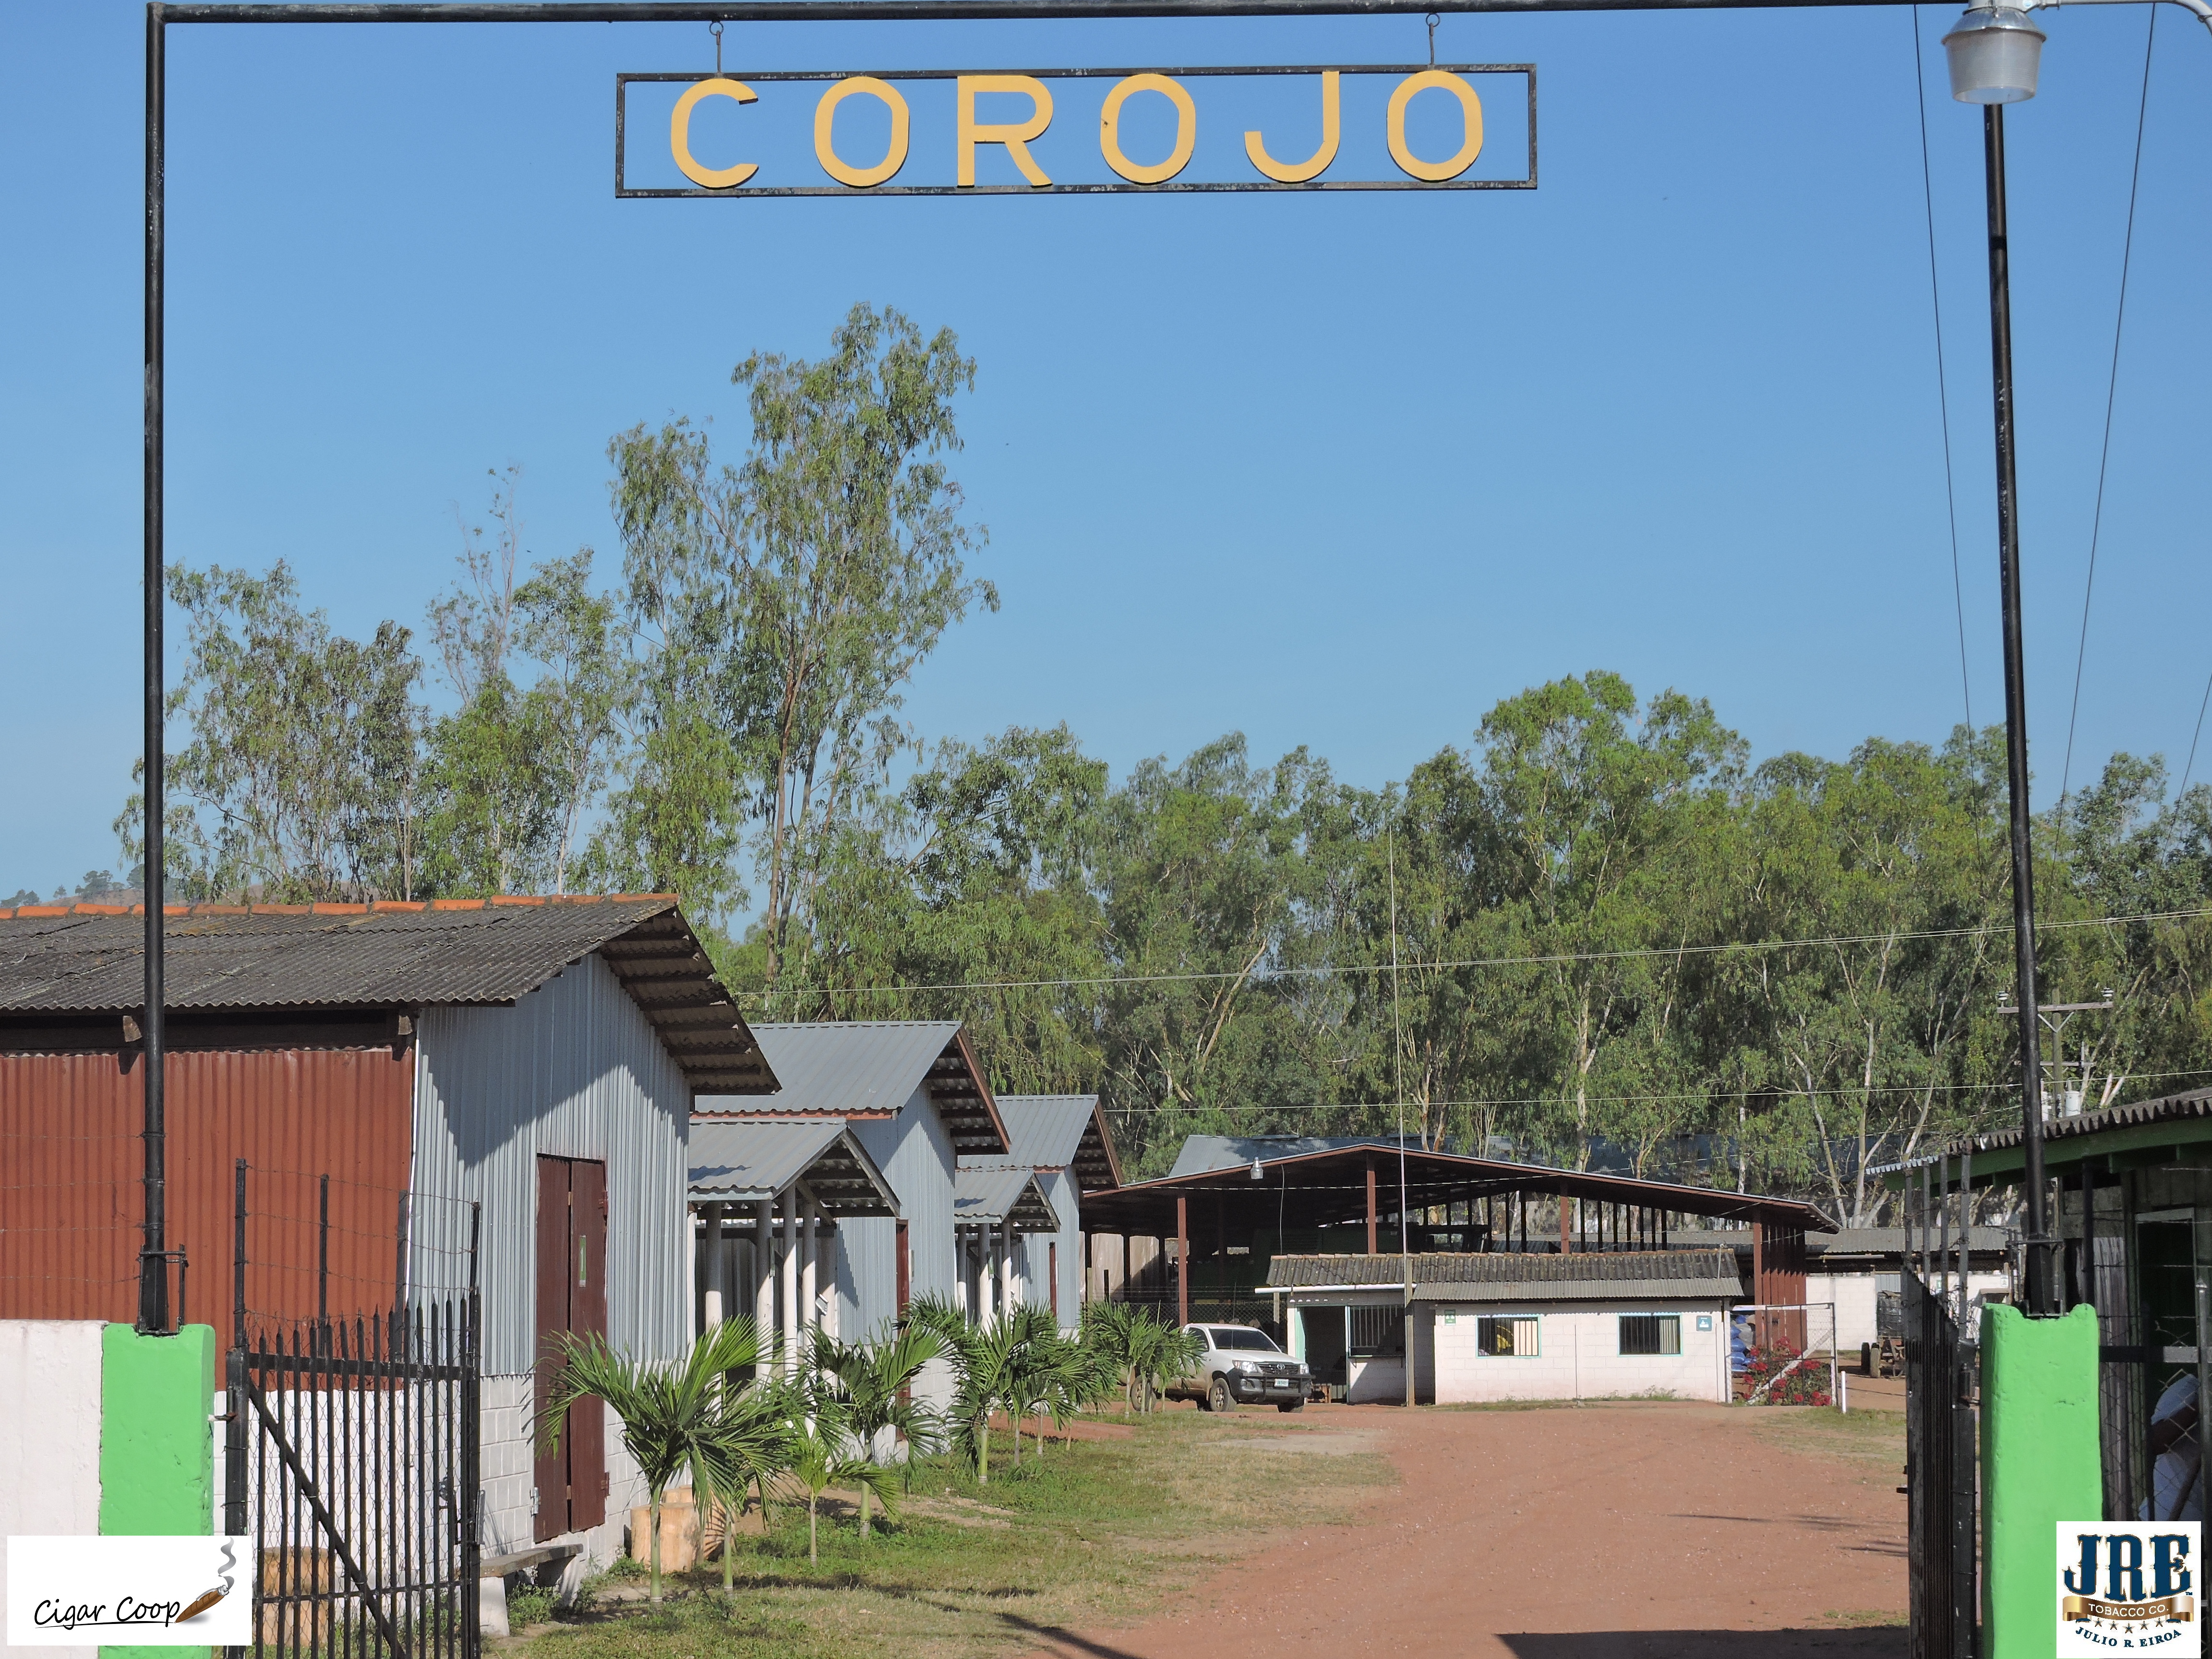 Feature Story: A Visit to the JRE Tobacco Company Operations: Part 1-The Corojo Farm